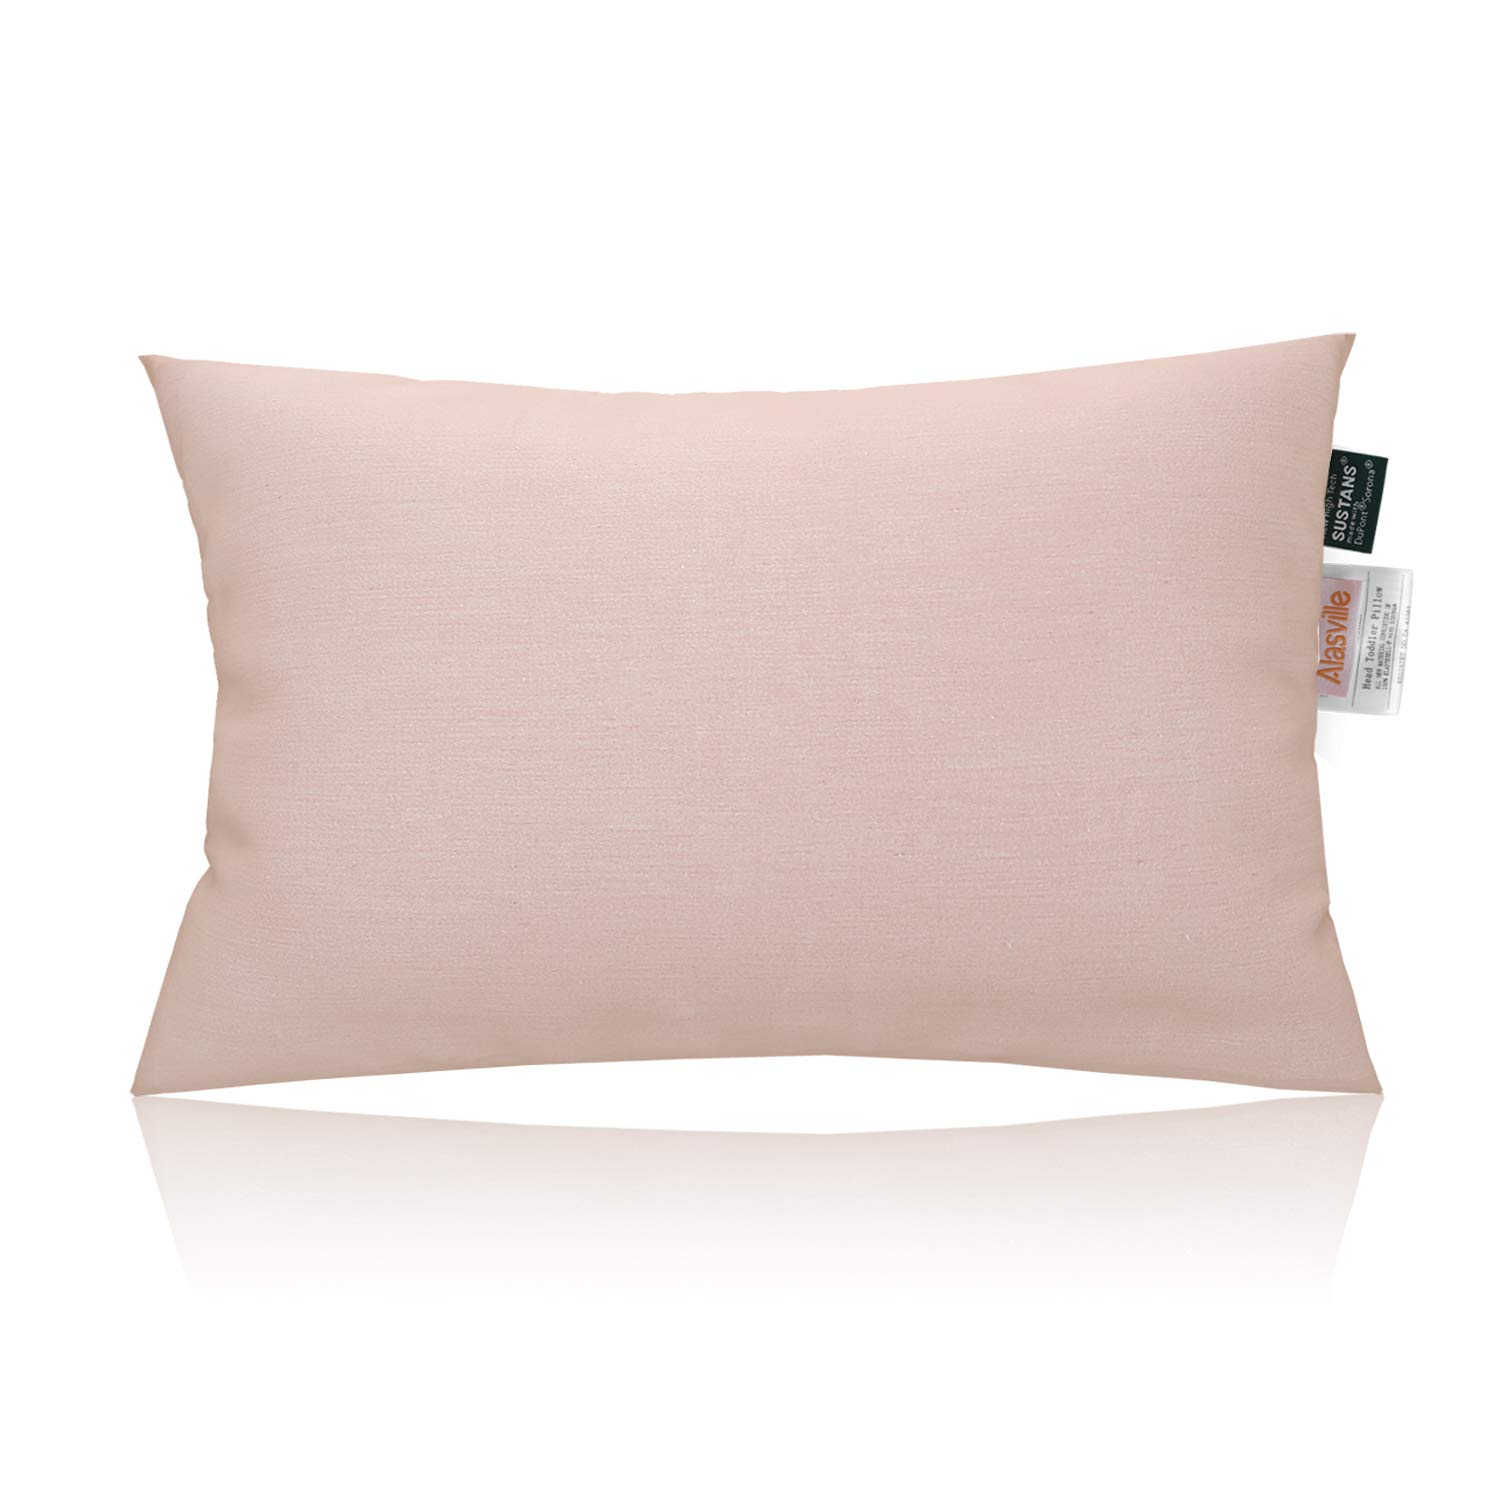 Soft 100% Organic Cotton Toddler Pillow - ALASVILLE Natural Breathable Hypoallergenic Sleeping Pillows for Kids/Baby/Children, Antibacterial & Anti-mite, Pillow Only - 13